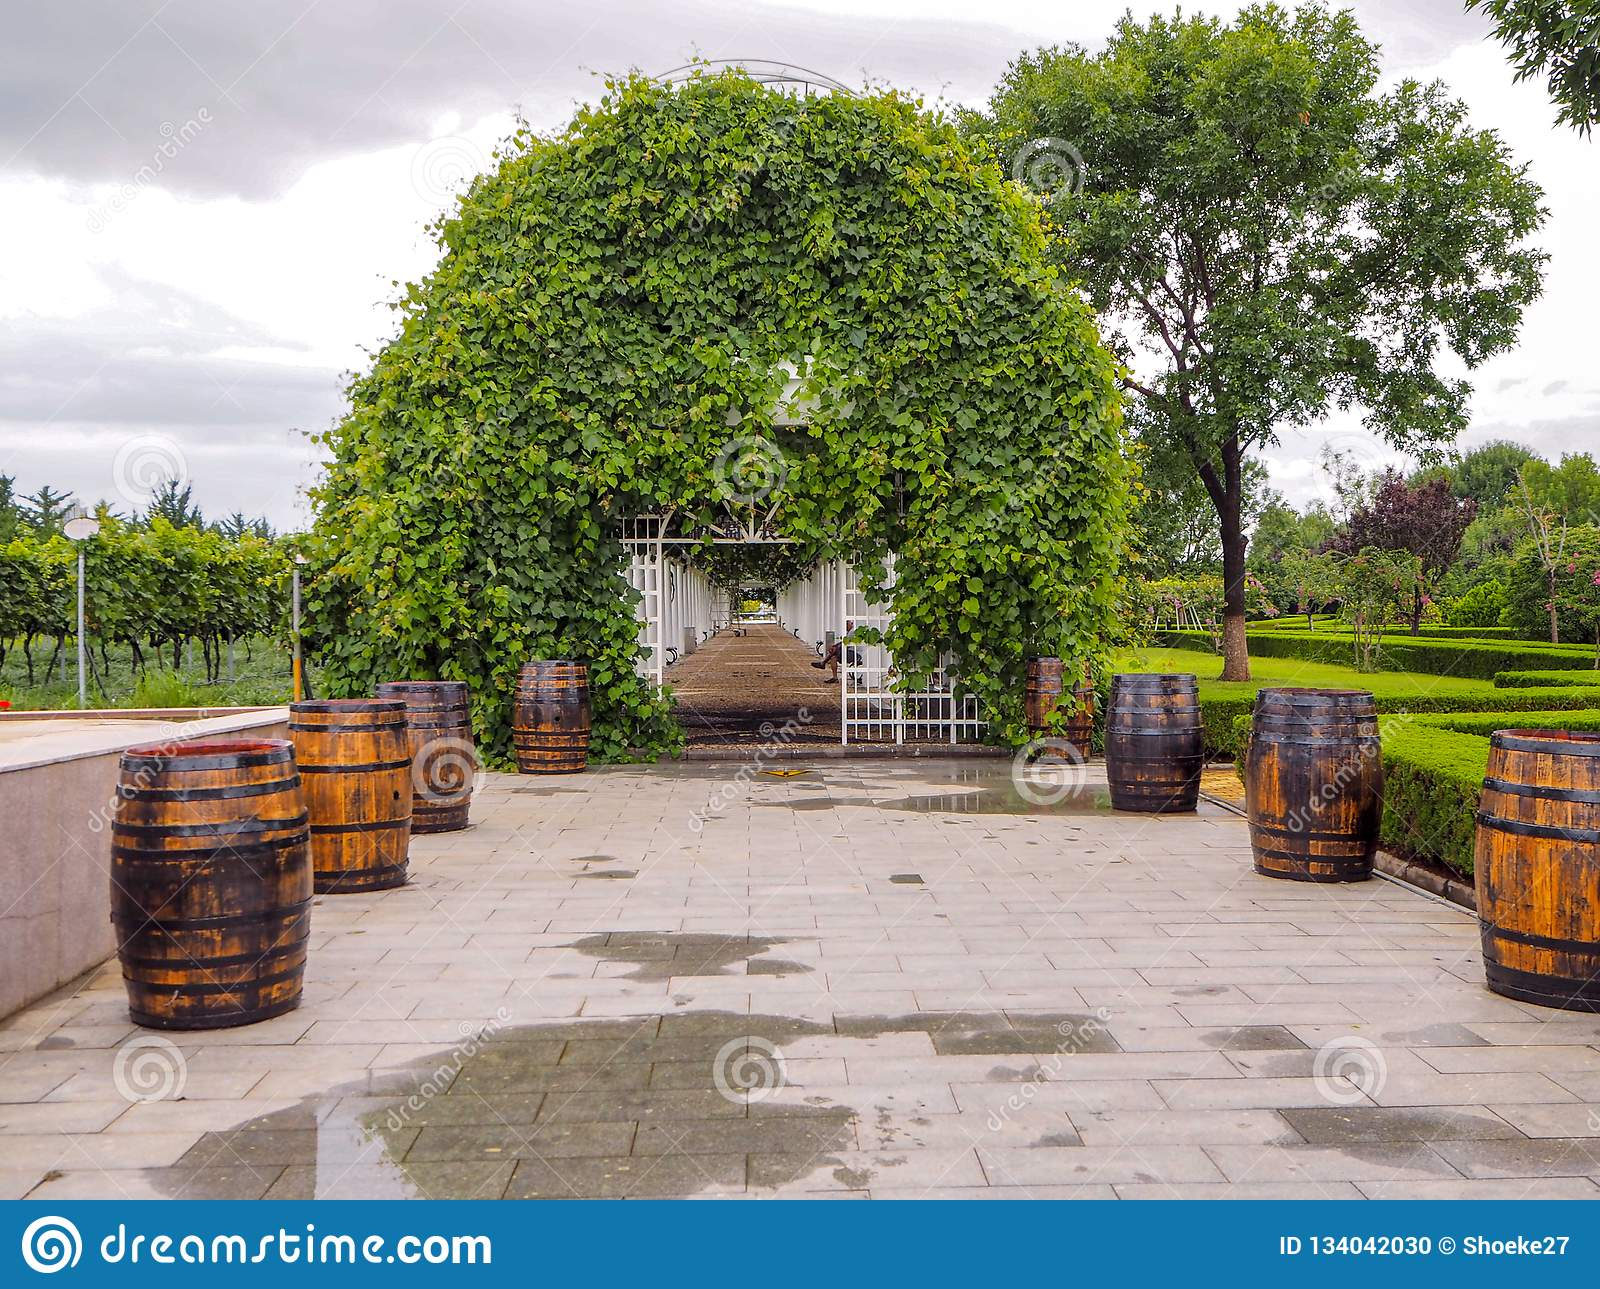 Lush pergola covered in grape vines at the Changyu vineyard estate in Yantai, the largest Chinese wine producer